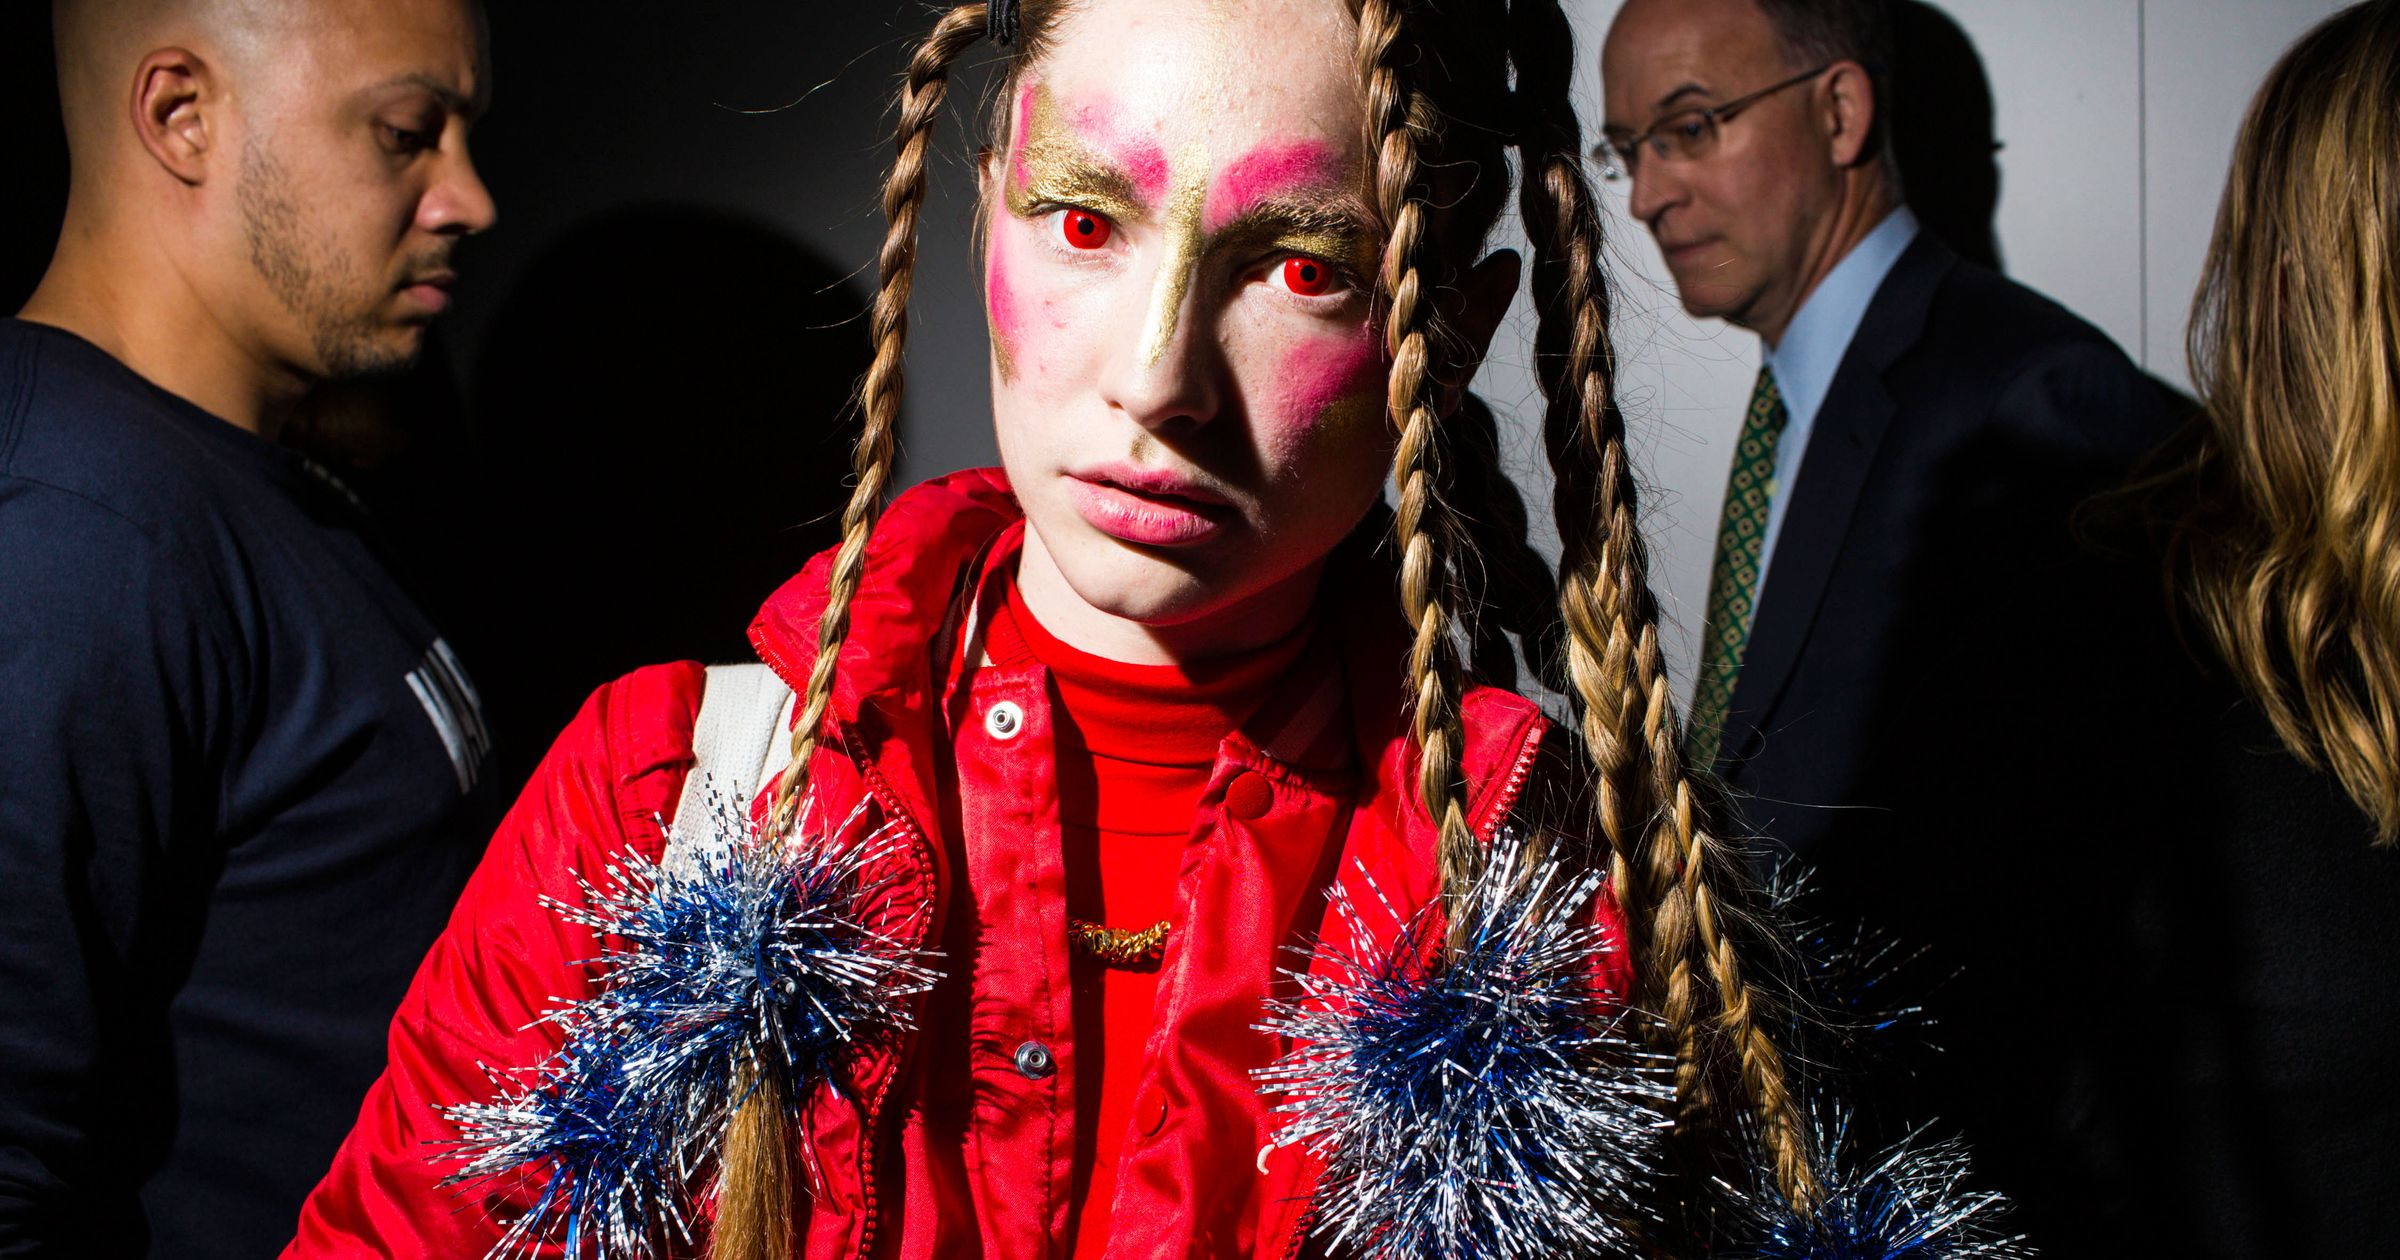 Inside Hood by Air's Big, Creepy MoMA Party